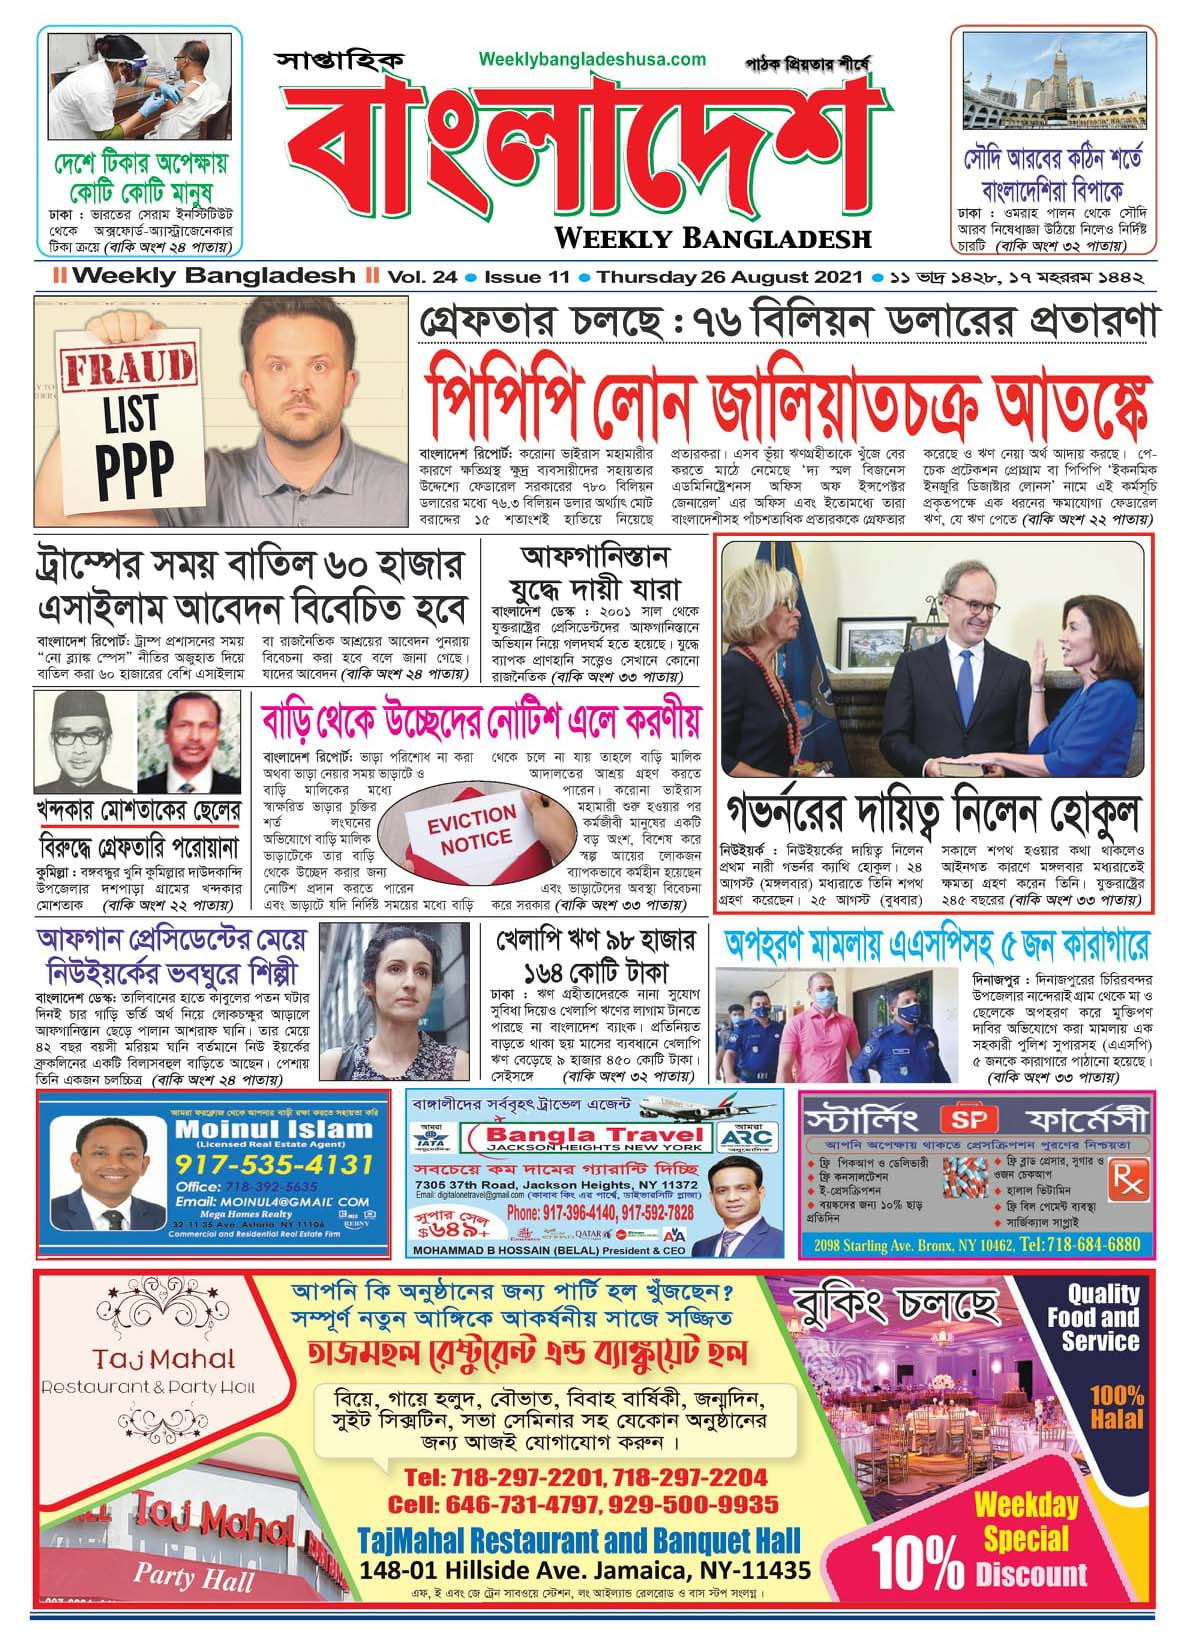 VOL 24, ISSUE 11, 26 August 2021